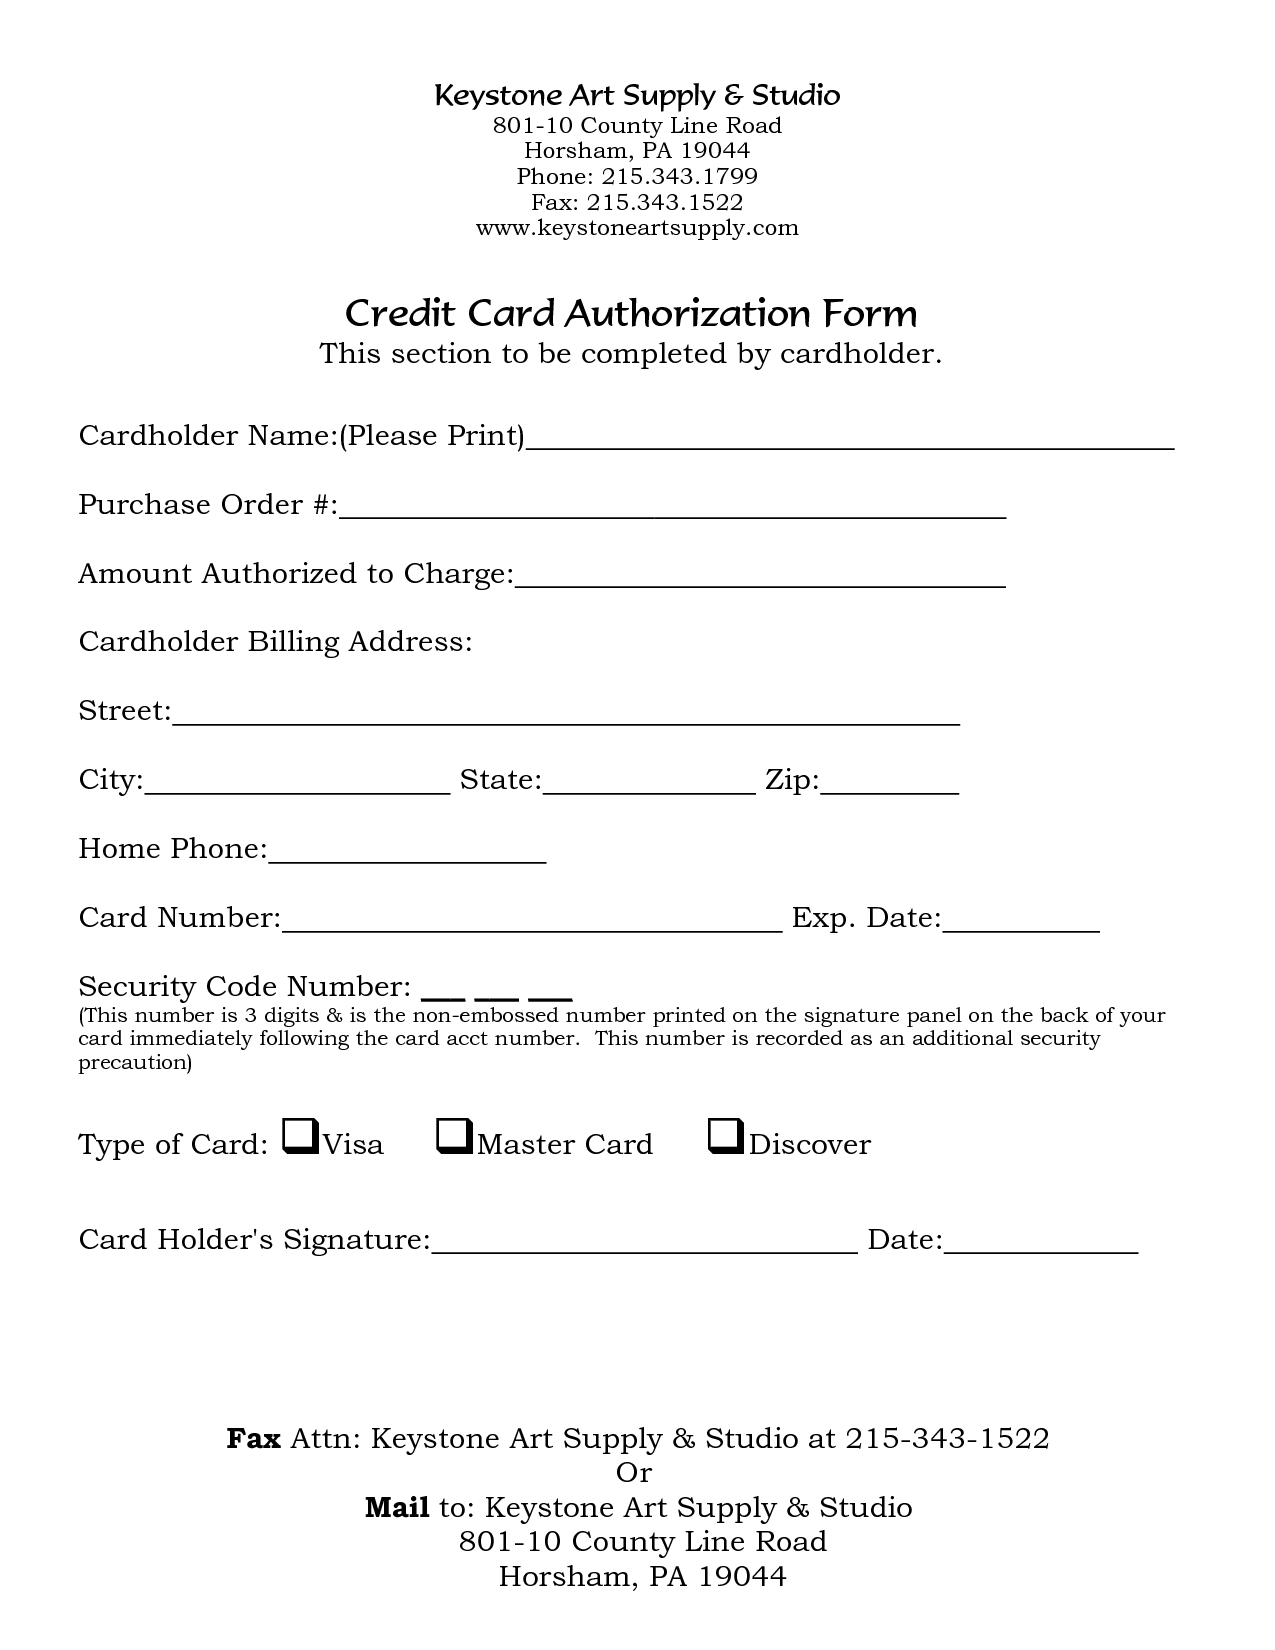 5 Credit Card Form Templates Formats Examples In Word Excel